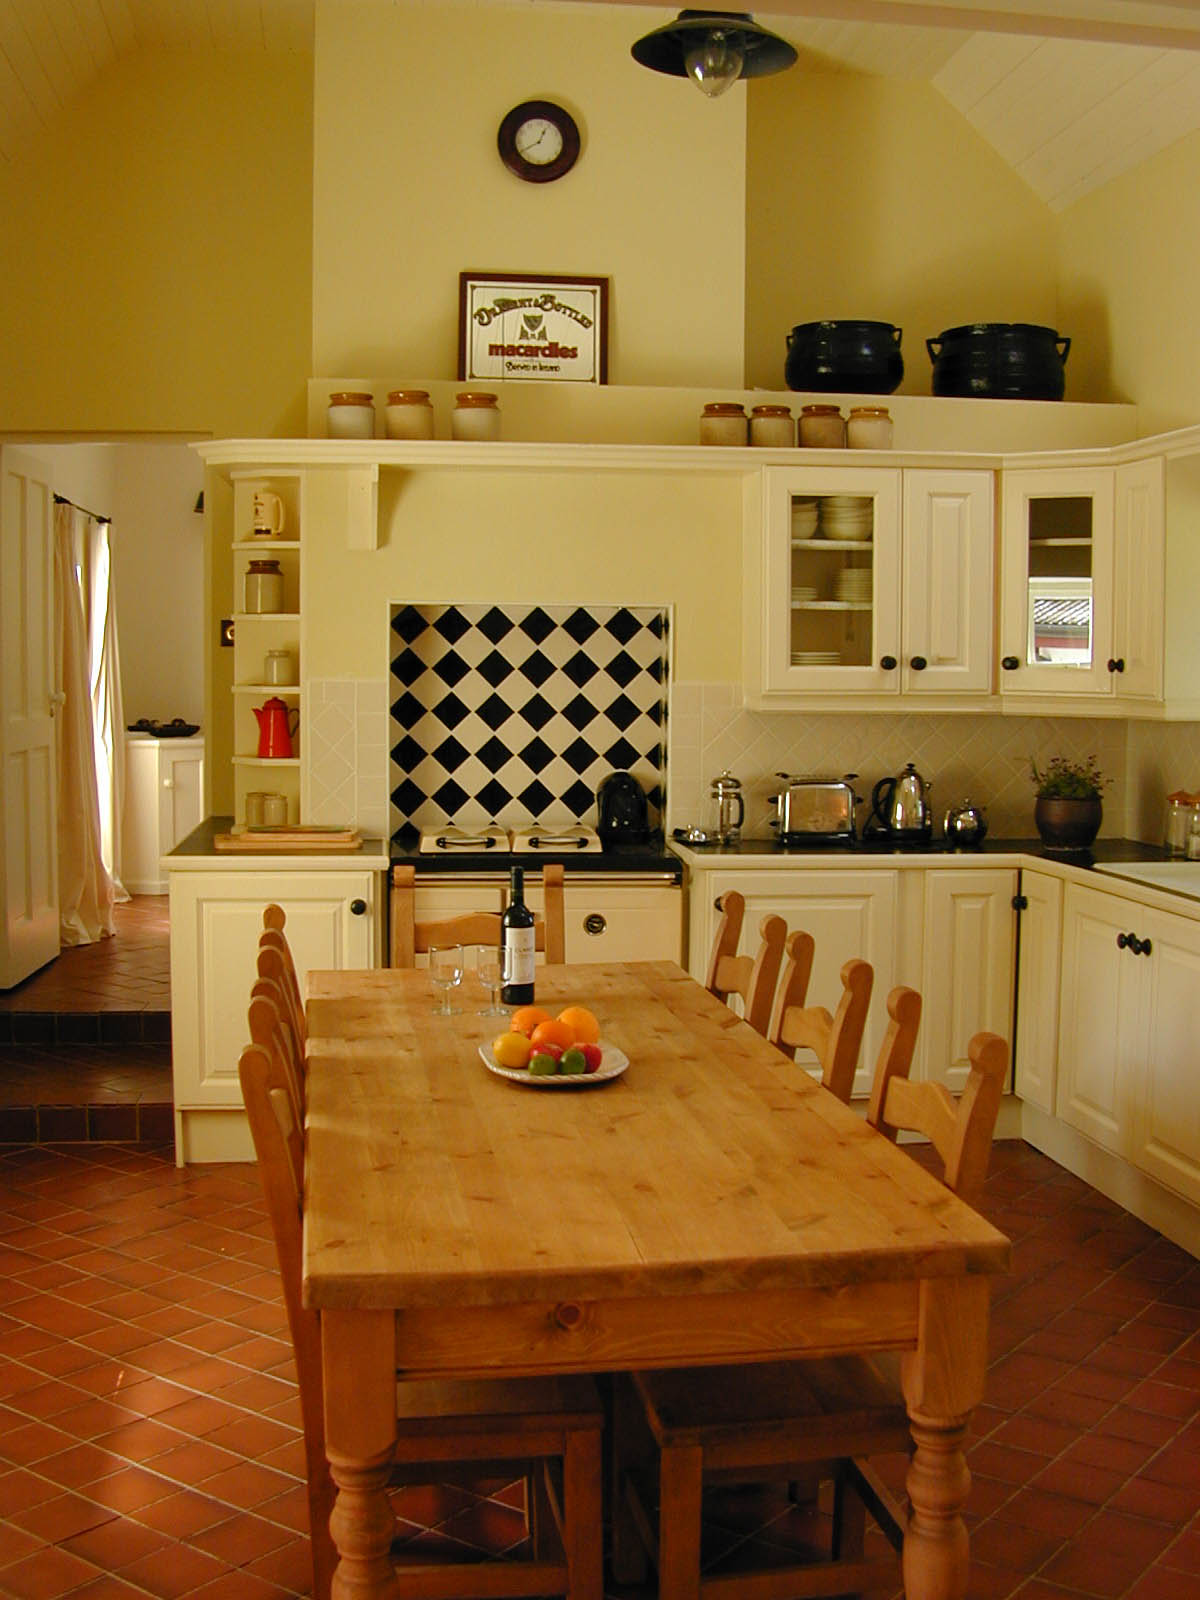 Wicklow Cottage Kitchen Image